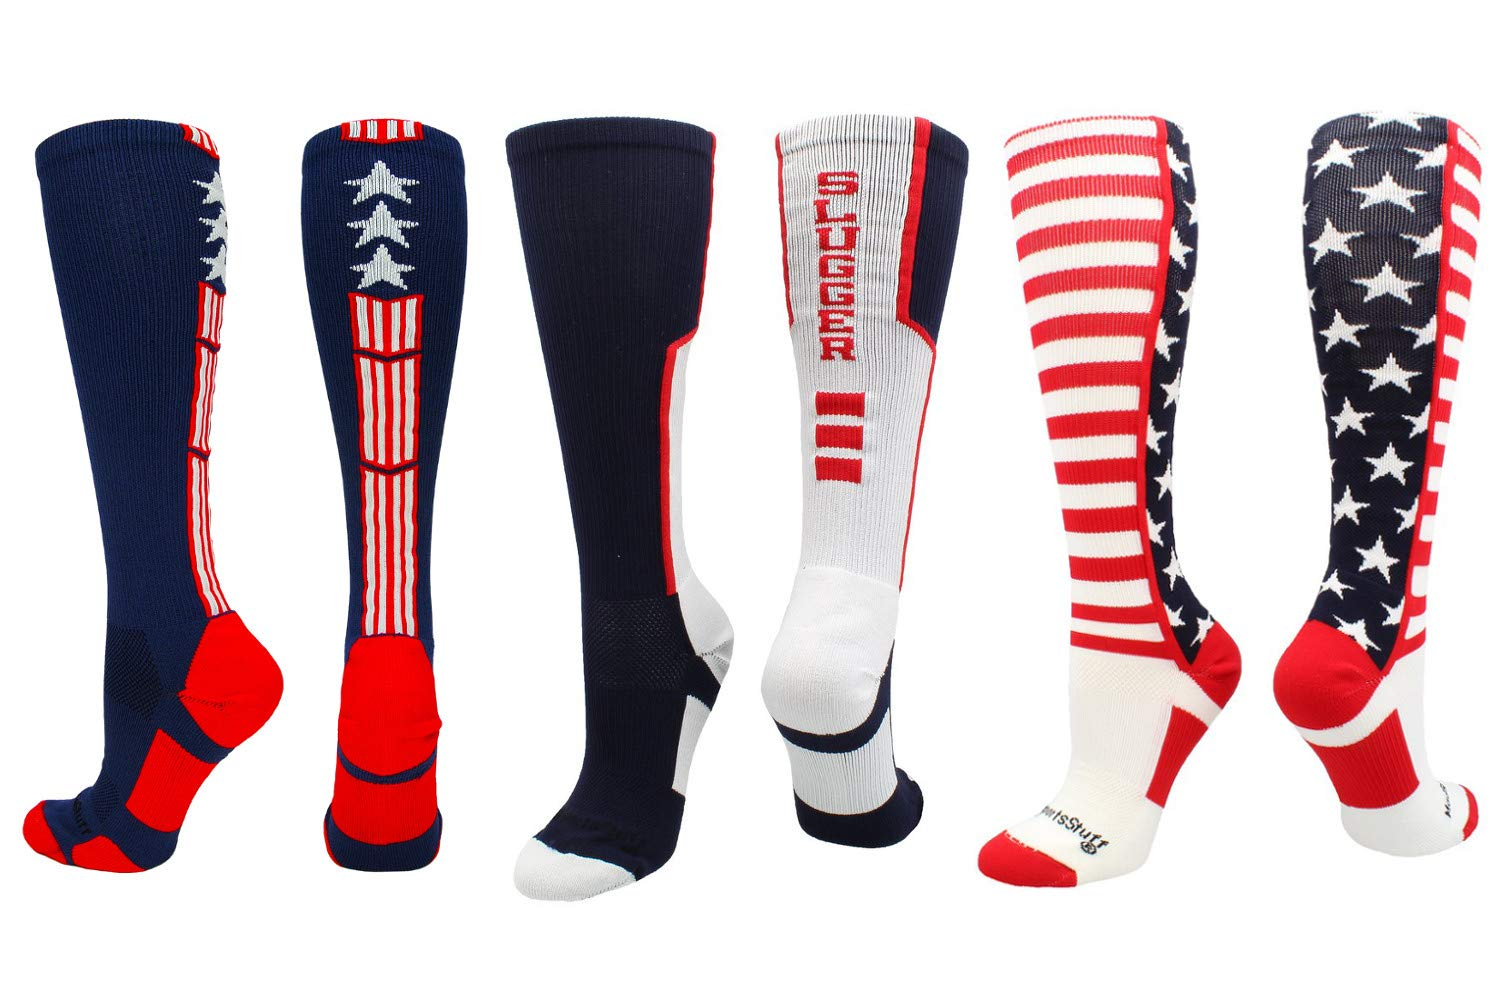 MadSportsStuff Patriot USA American Flag Baseball Socks 3 Pack Combo (3 Pack-Multi, Large) by MadSportsStuff